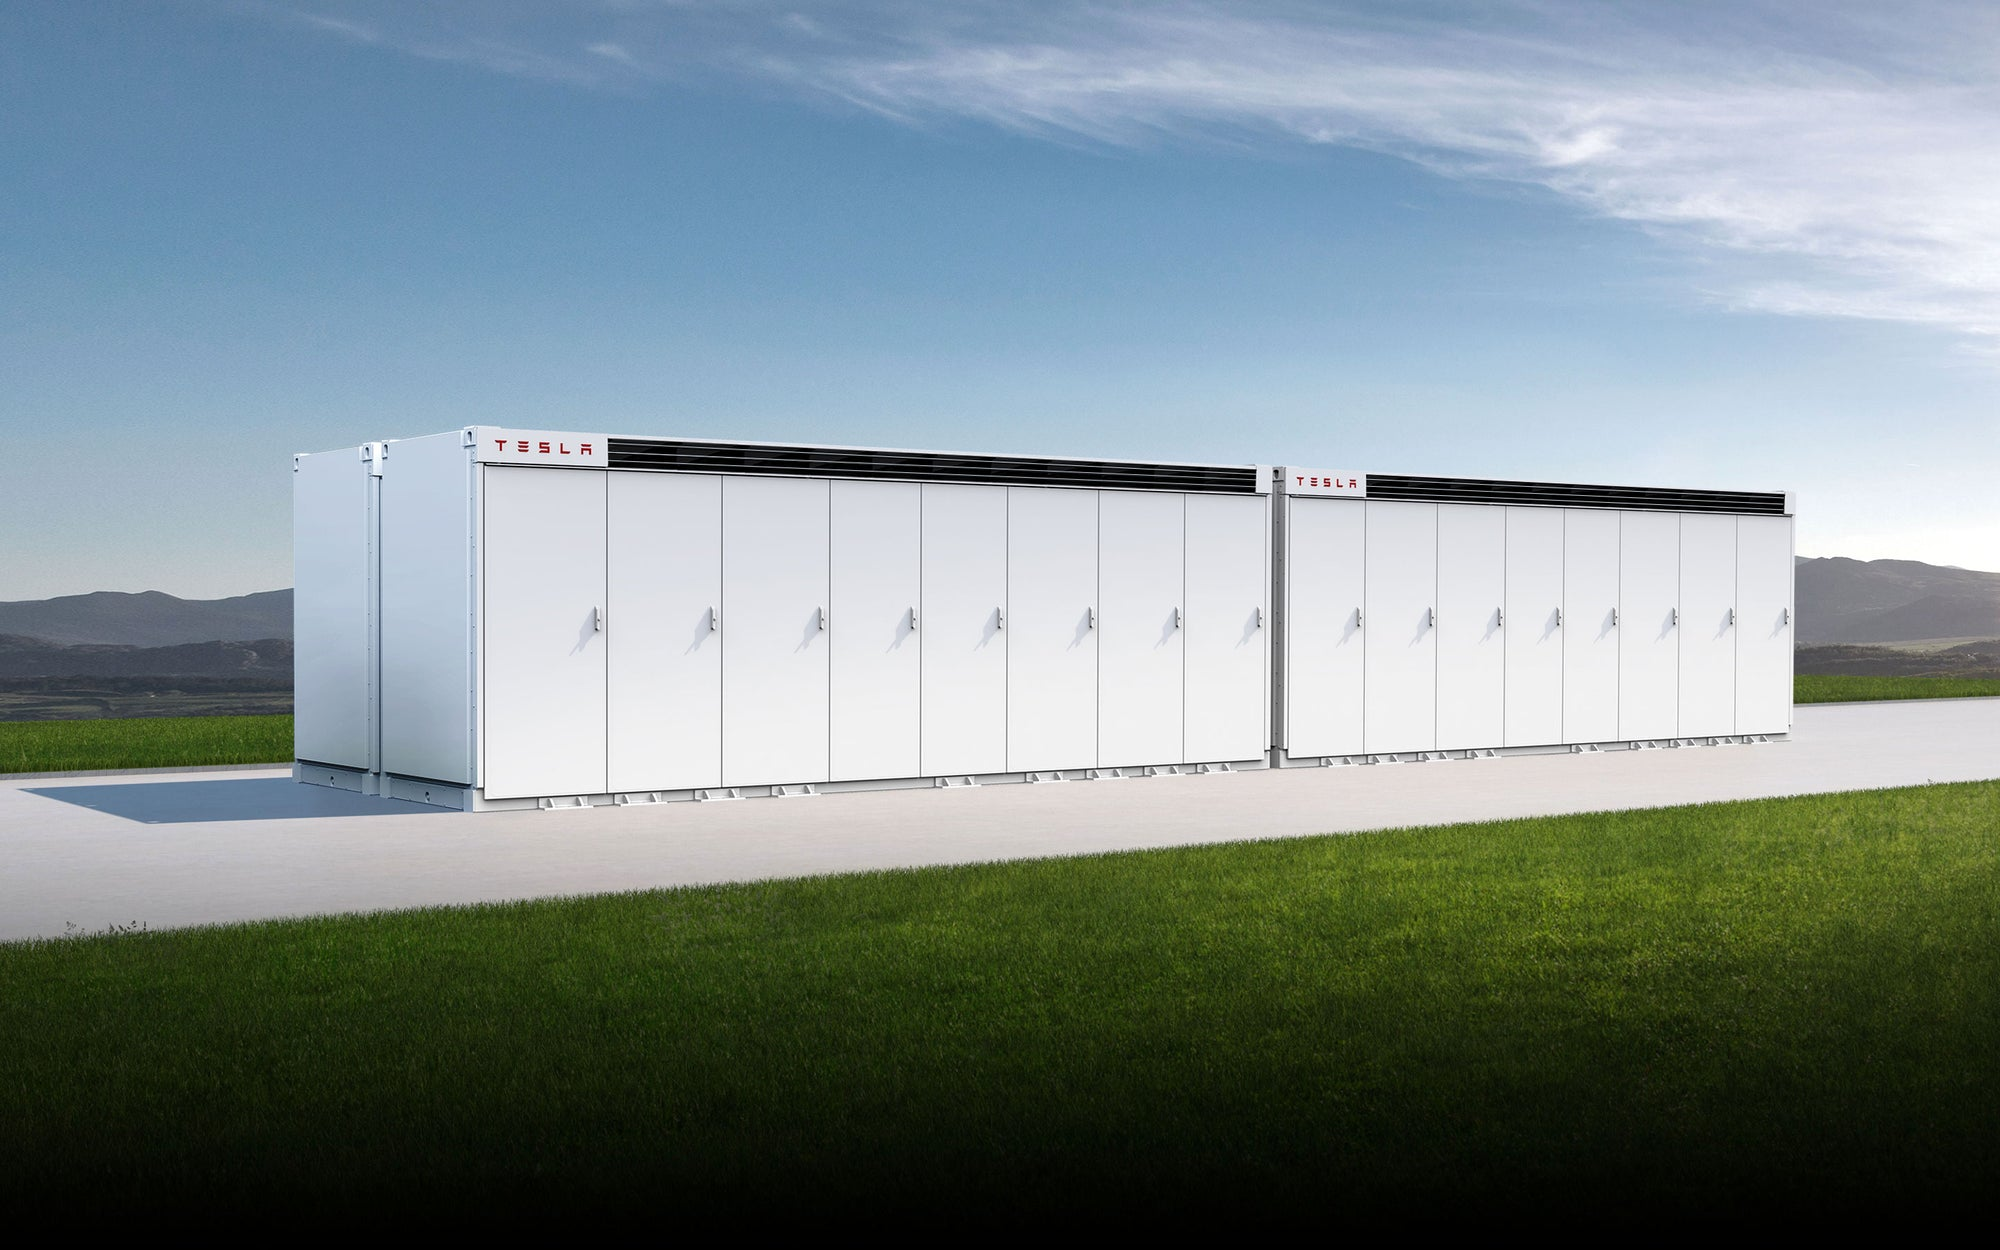 Tesla Big-Battery Leads Clean Energy Revolution as California Targets 100% CO2-Free Electricity by 2035